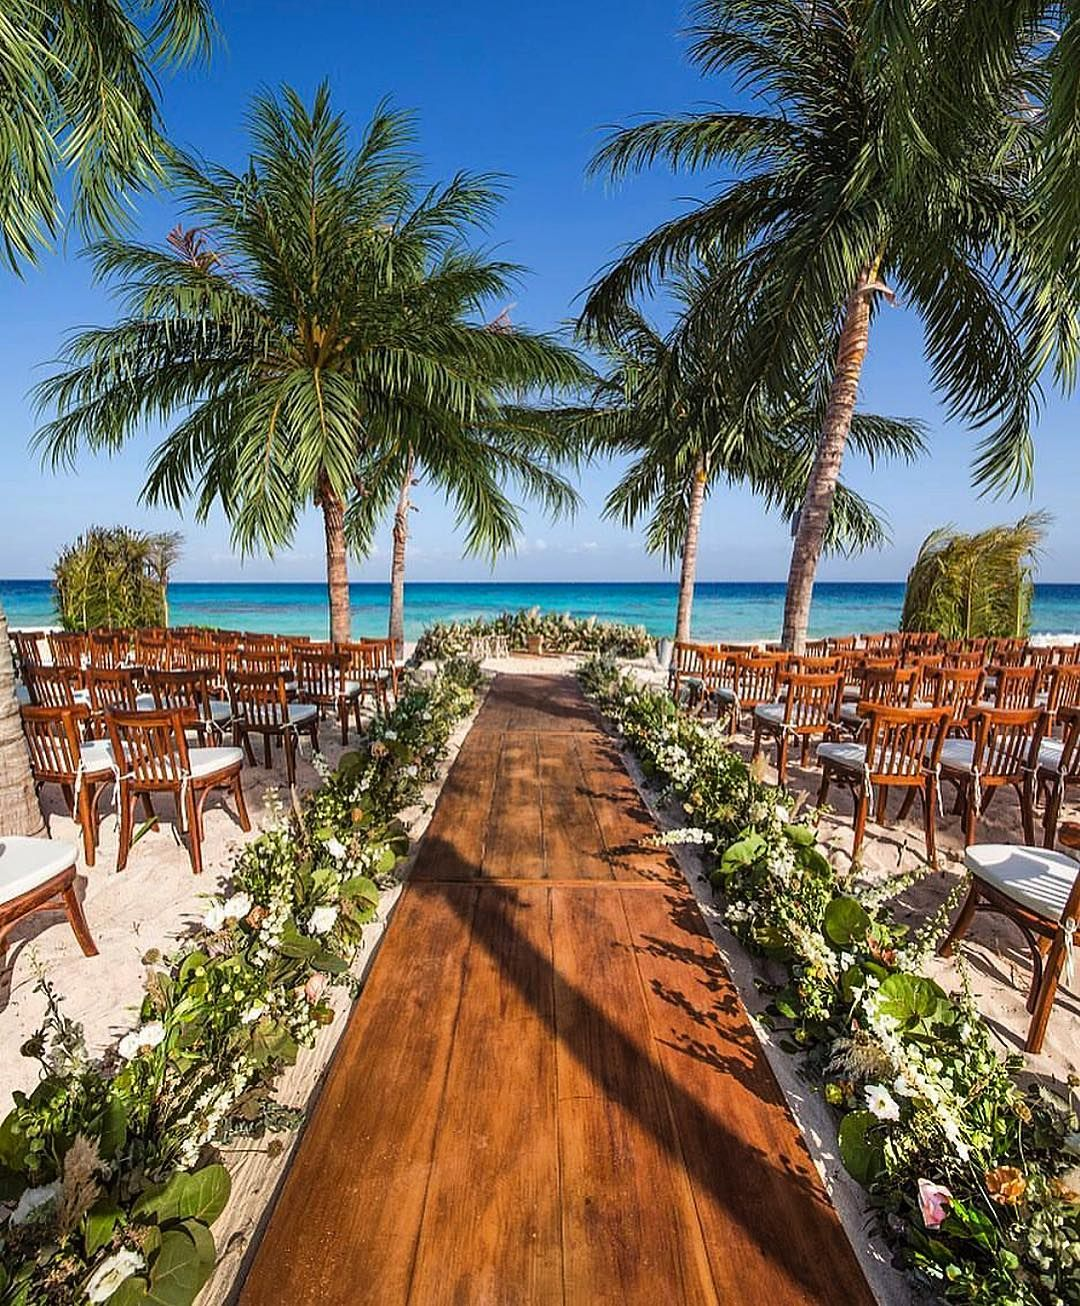 Hotel Xcaret Mexico One Of Now Wedding S Best Of 2019 Mexico